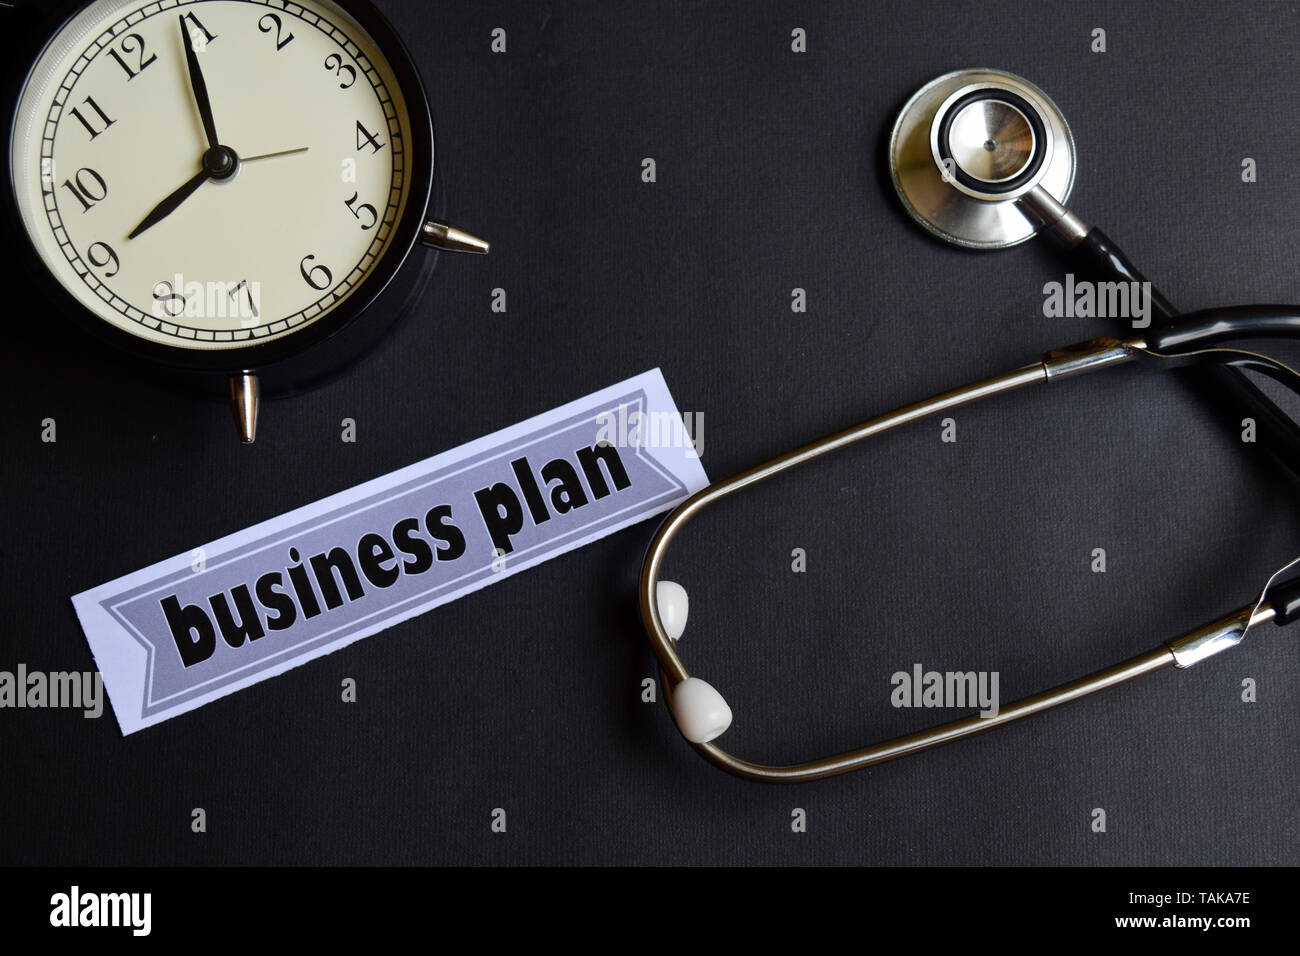 Business plan on the paper with Healthcare Concept Inspiration. alarm clock, Black stethoscope. - Stock Image